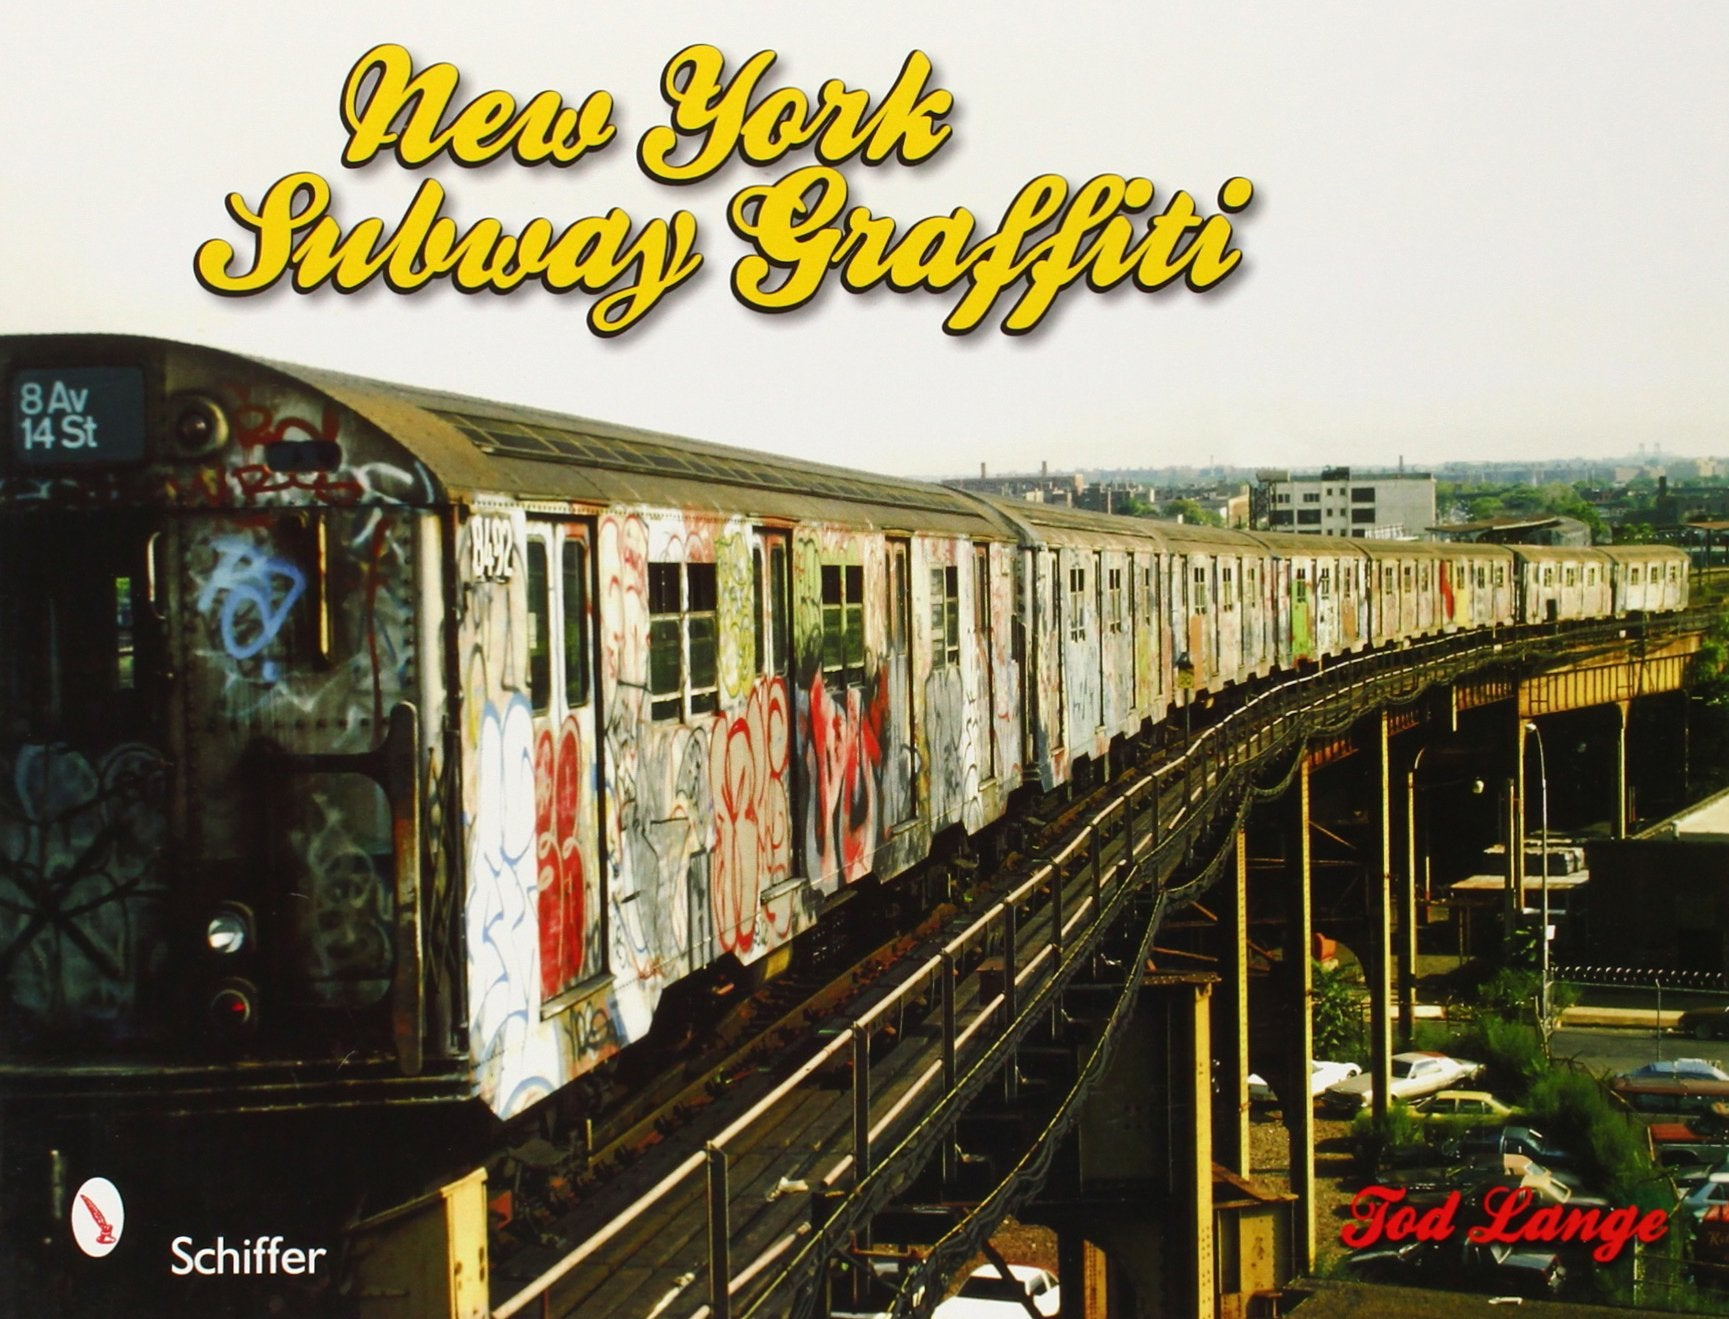 Tod Lange│New York Subway Graffiti